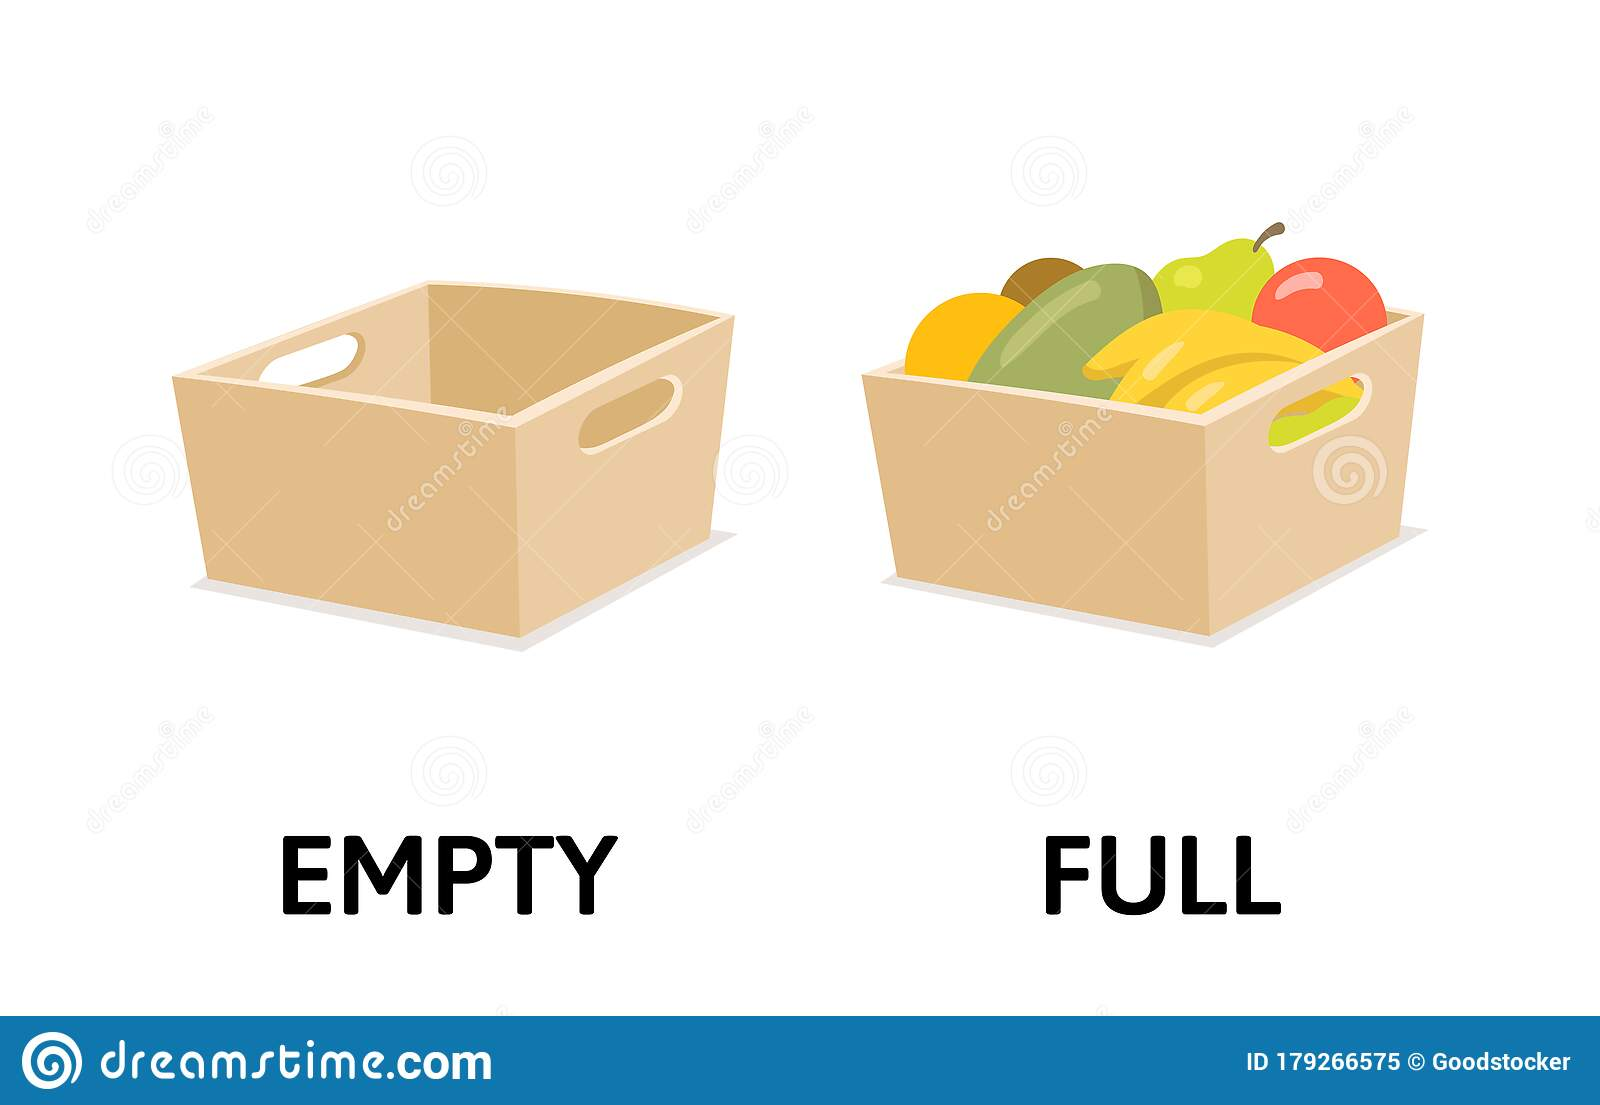 Words Full And Empty Flashcard With Box Fruits And